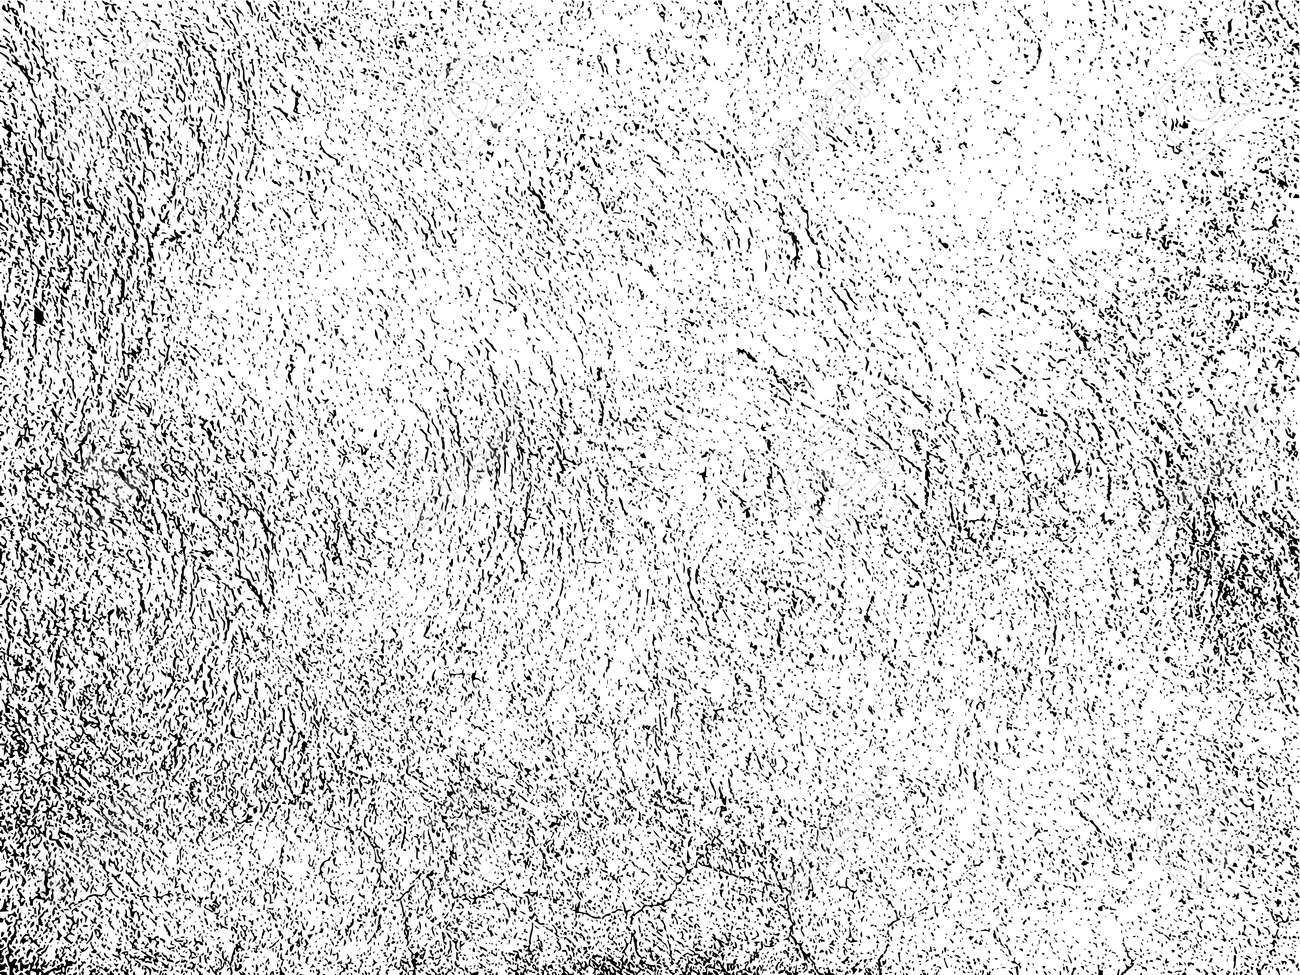 Concrete texture. Cement overlay black and white texture. - 169850379